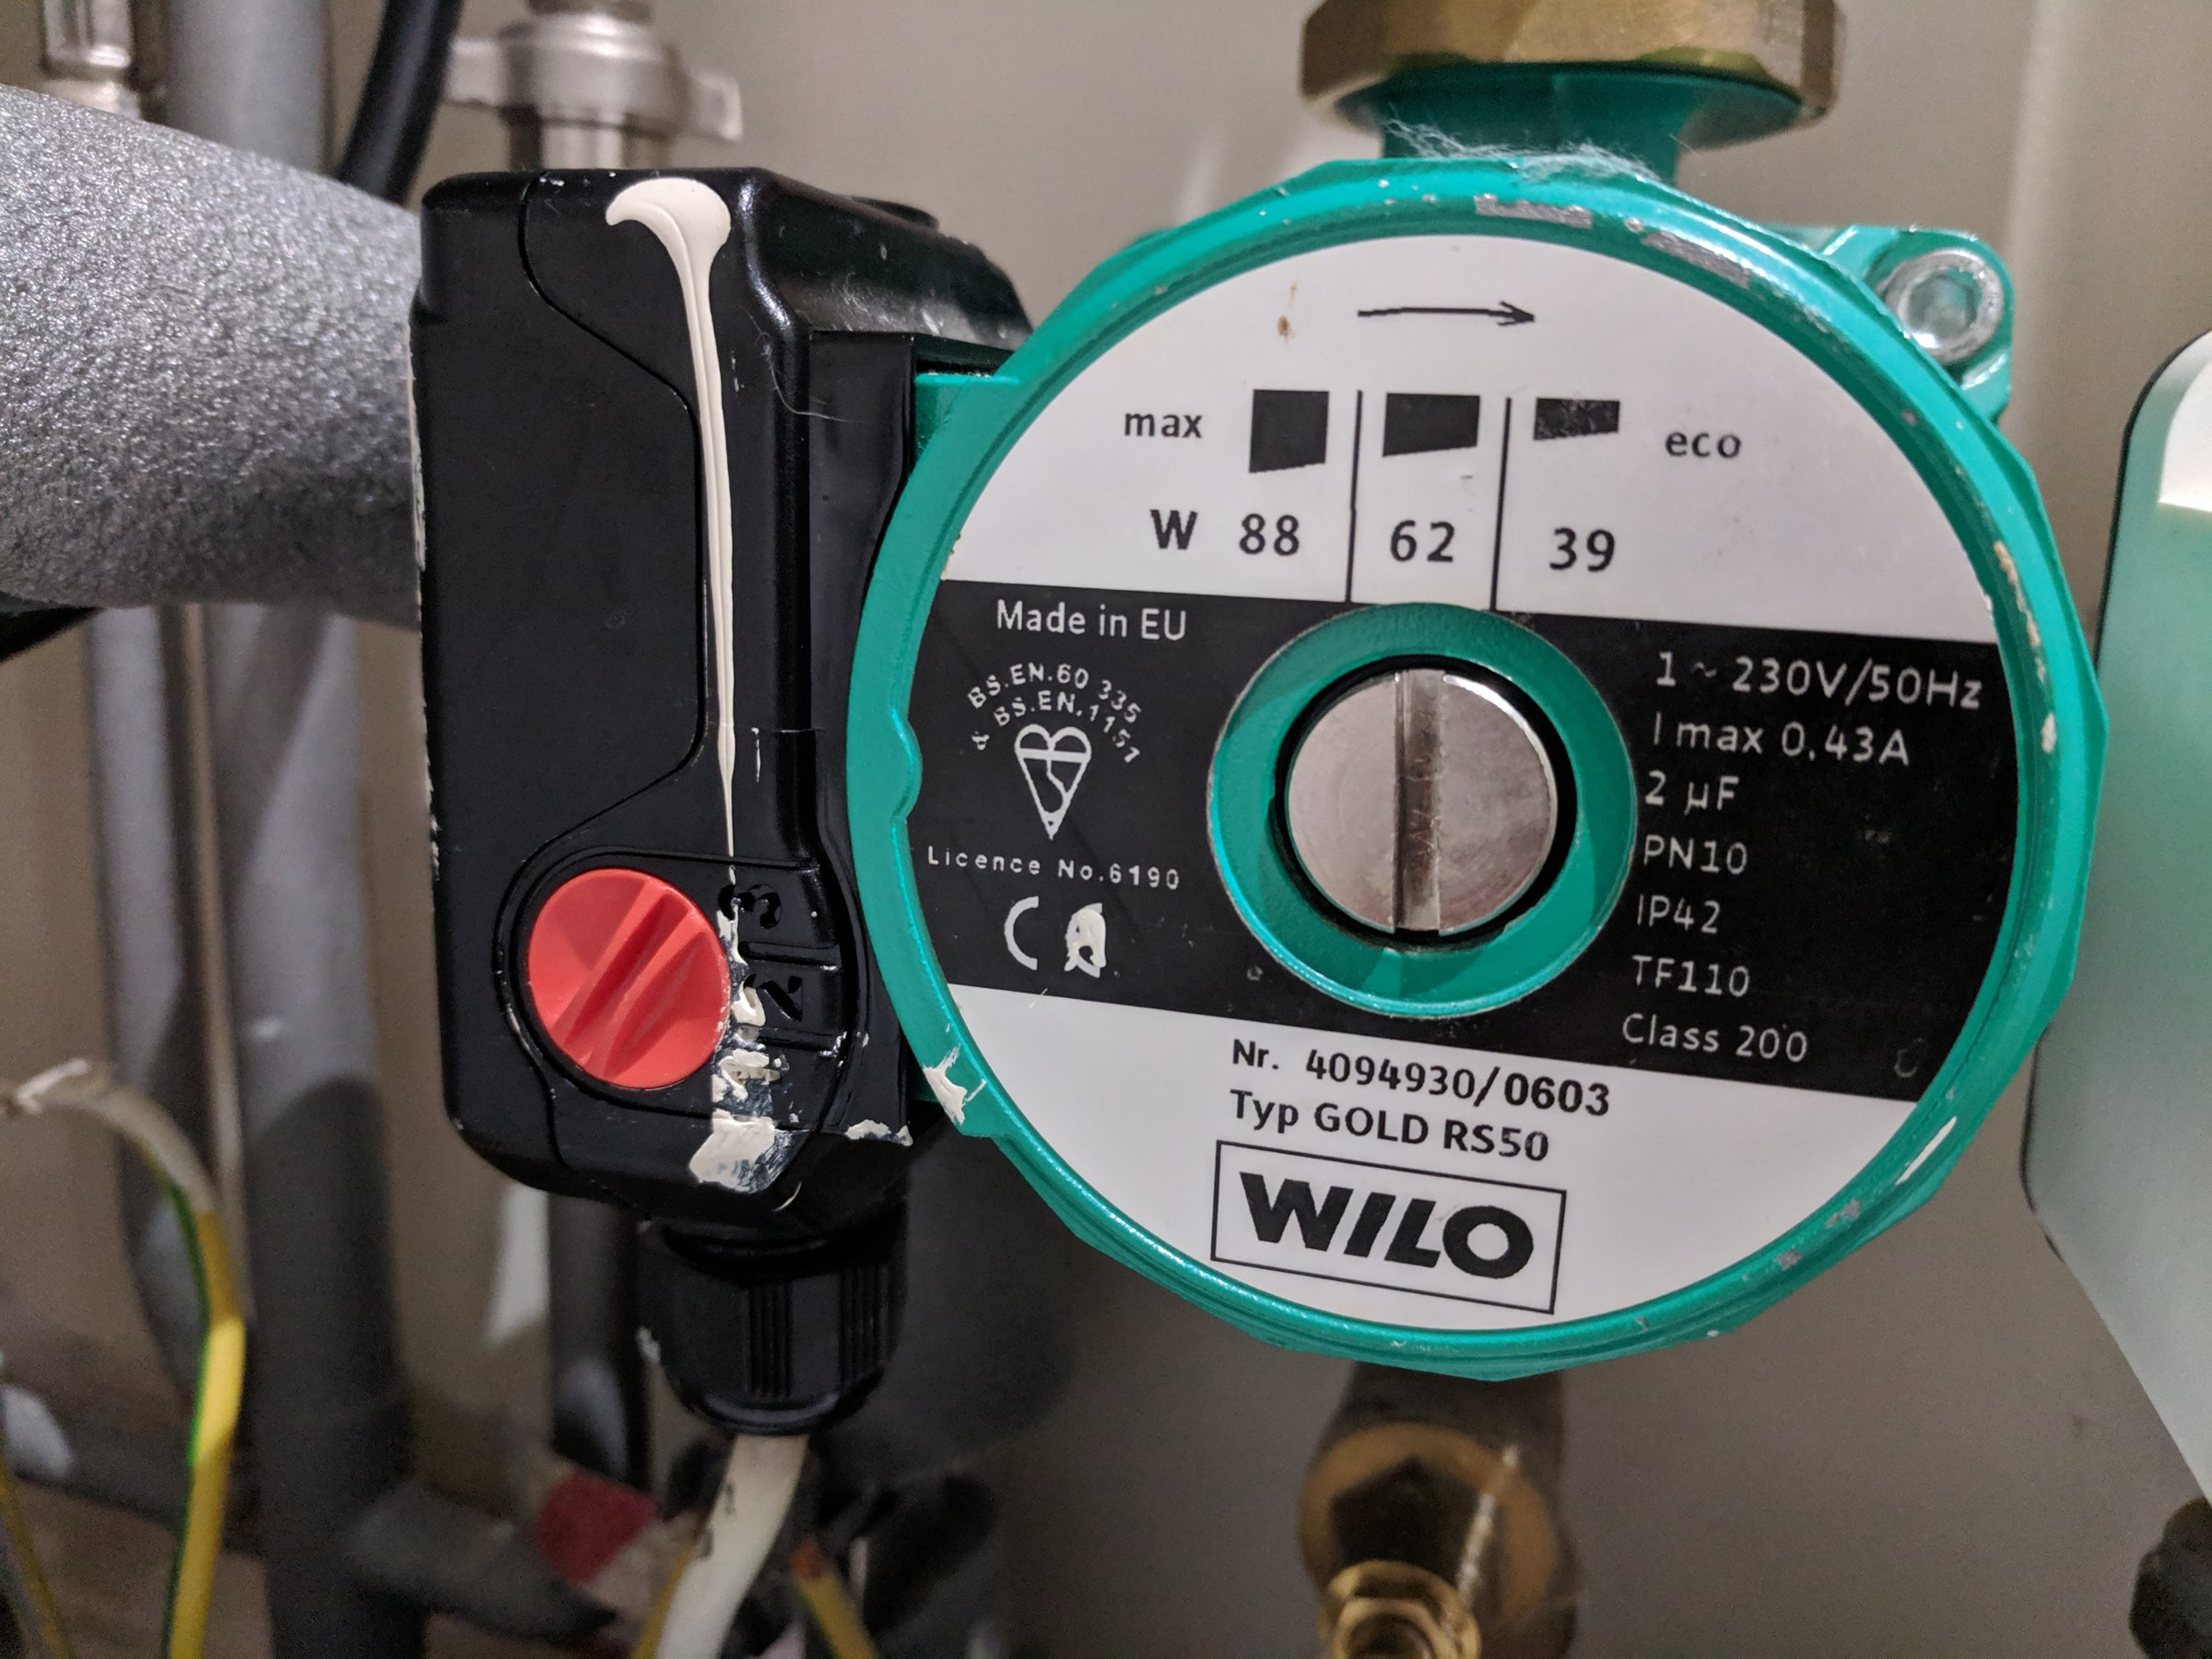 Astonishing Replacement For Wilo Gold Rs50 Circulating Pump Diynot Forums Wiring Digital Resources Antuskbiperorg